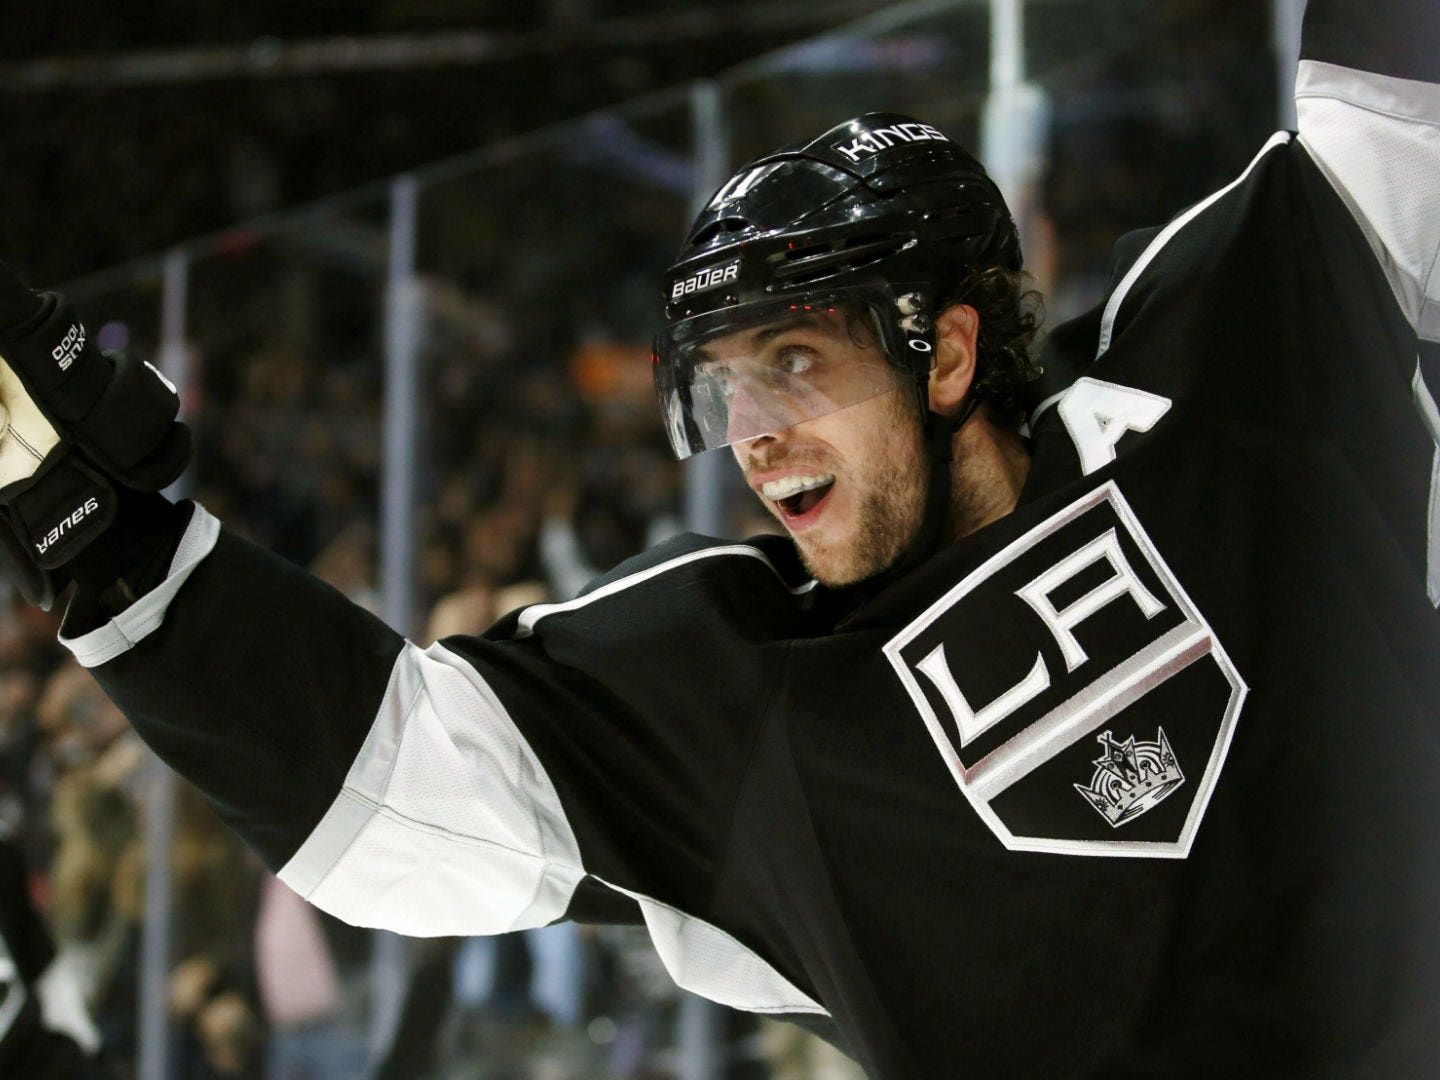 Main image for event titled L.A. Kings vs Anaheim Ducks (FANS RETURN)